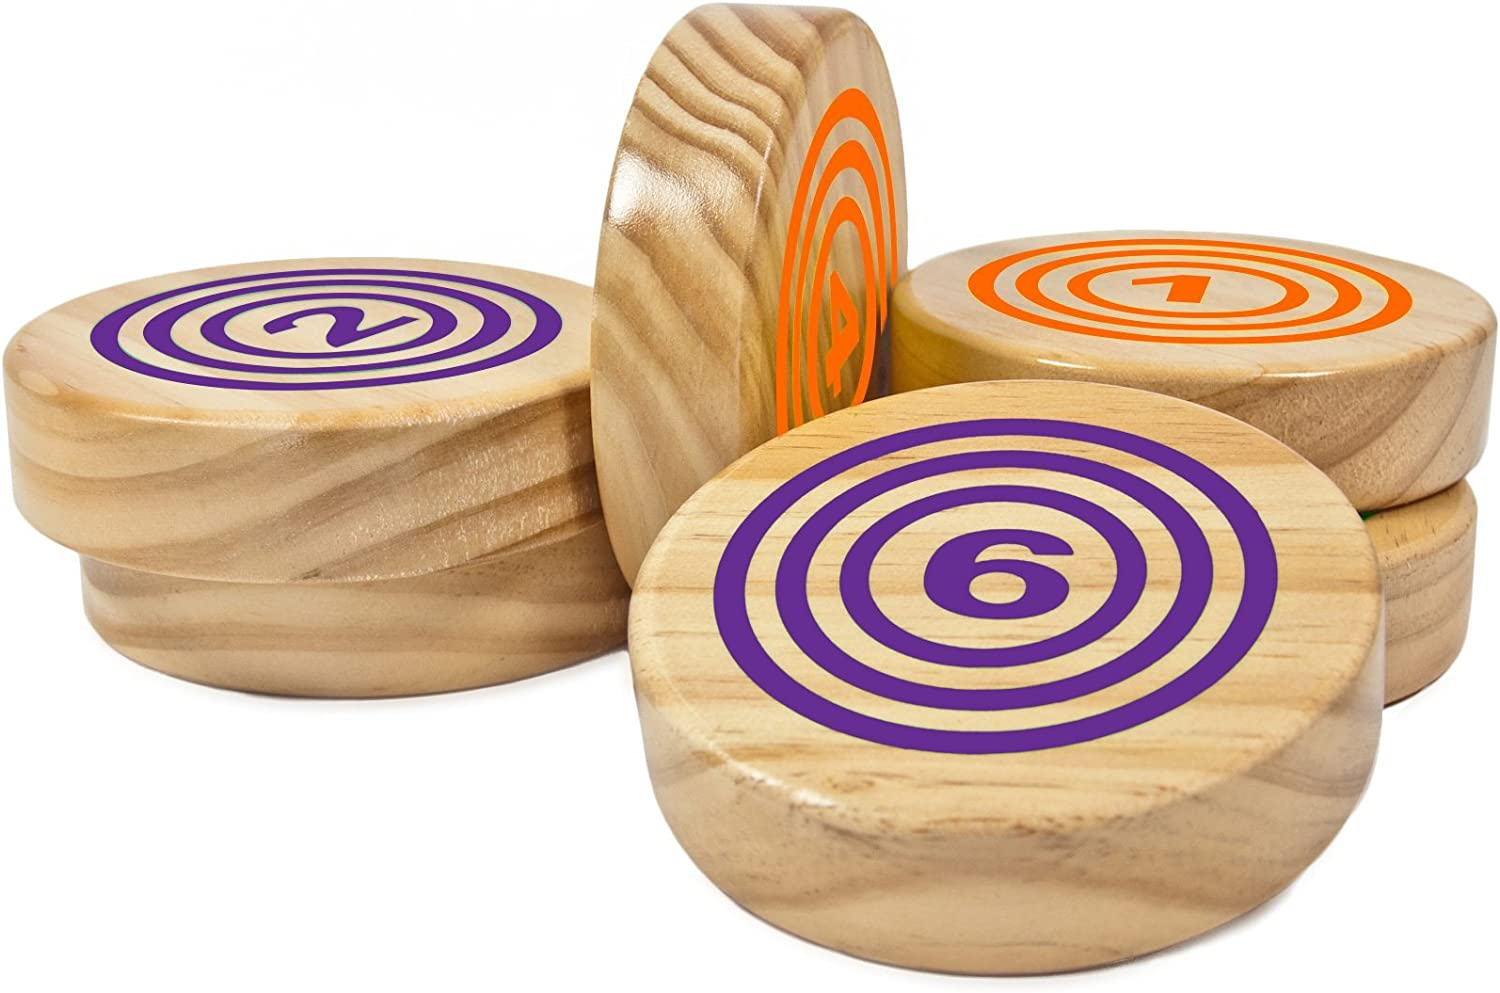 Rollors Backyard Game Expansion Pack and On Purple Orange Discs Cash Choice special price